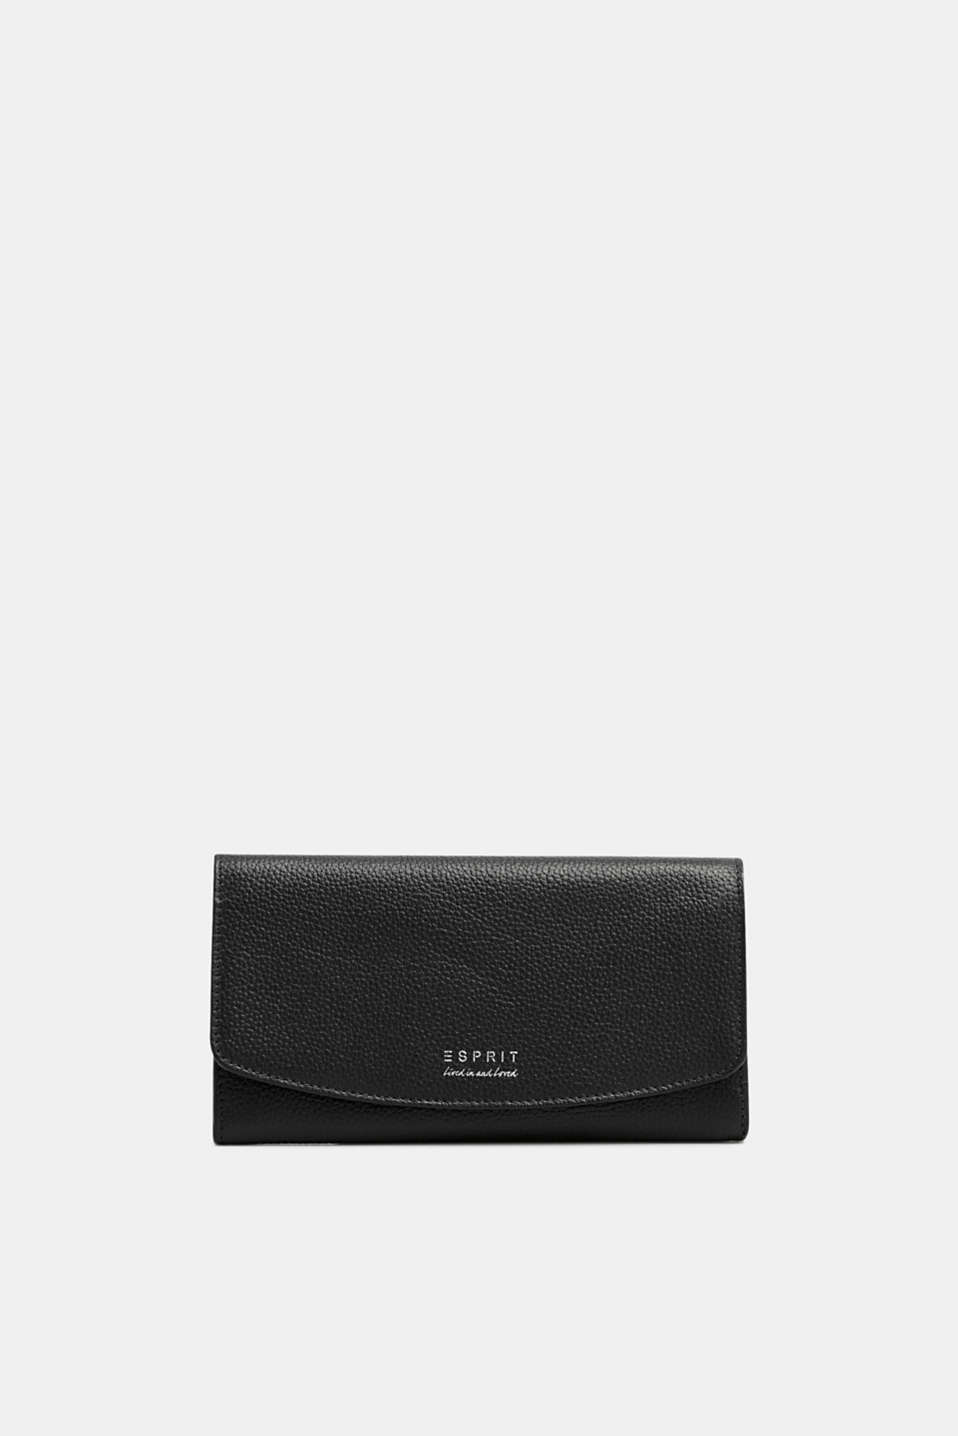 Esprit - Leather purse